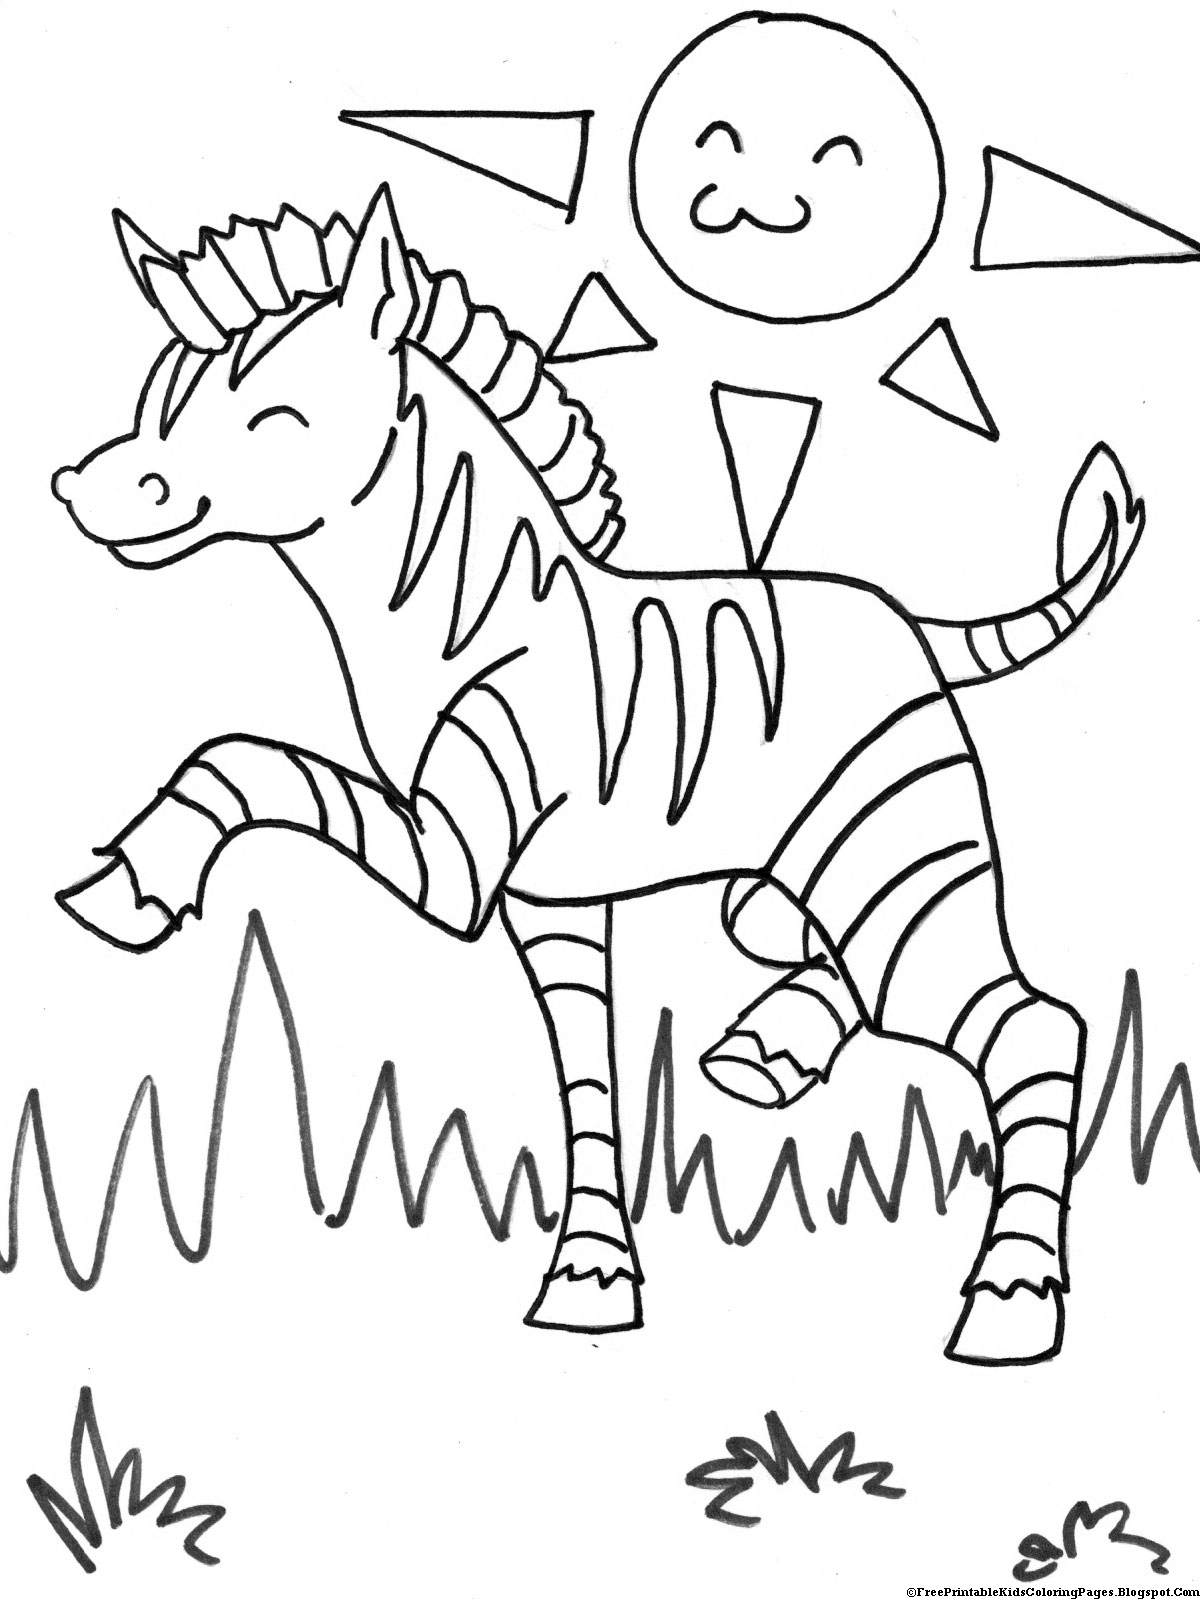 coloring pictures to color for kids animal coloring pages best coloring pages for kids kids color for pictures coloring to